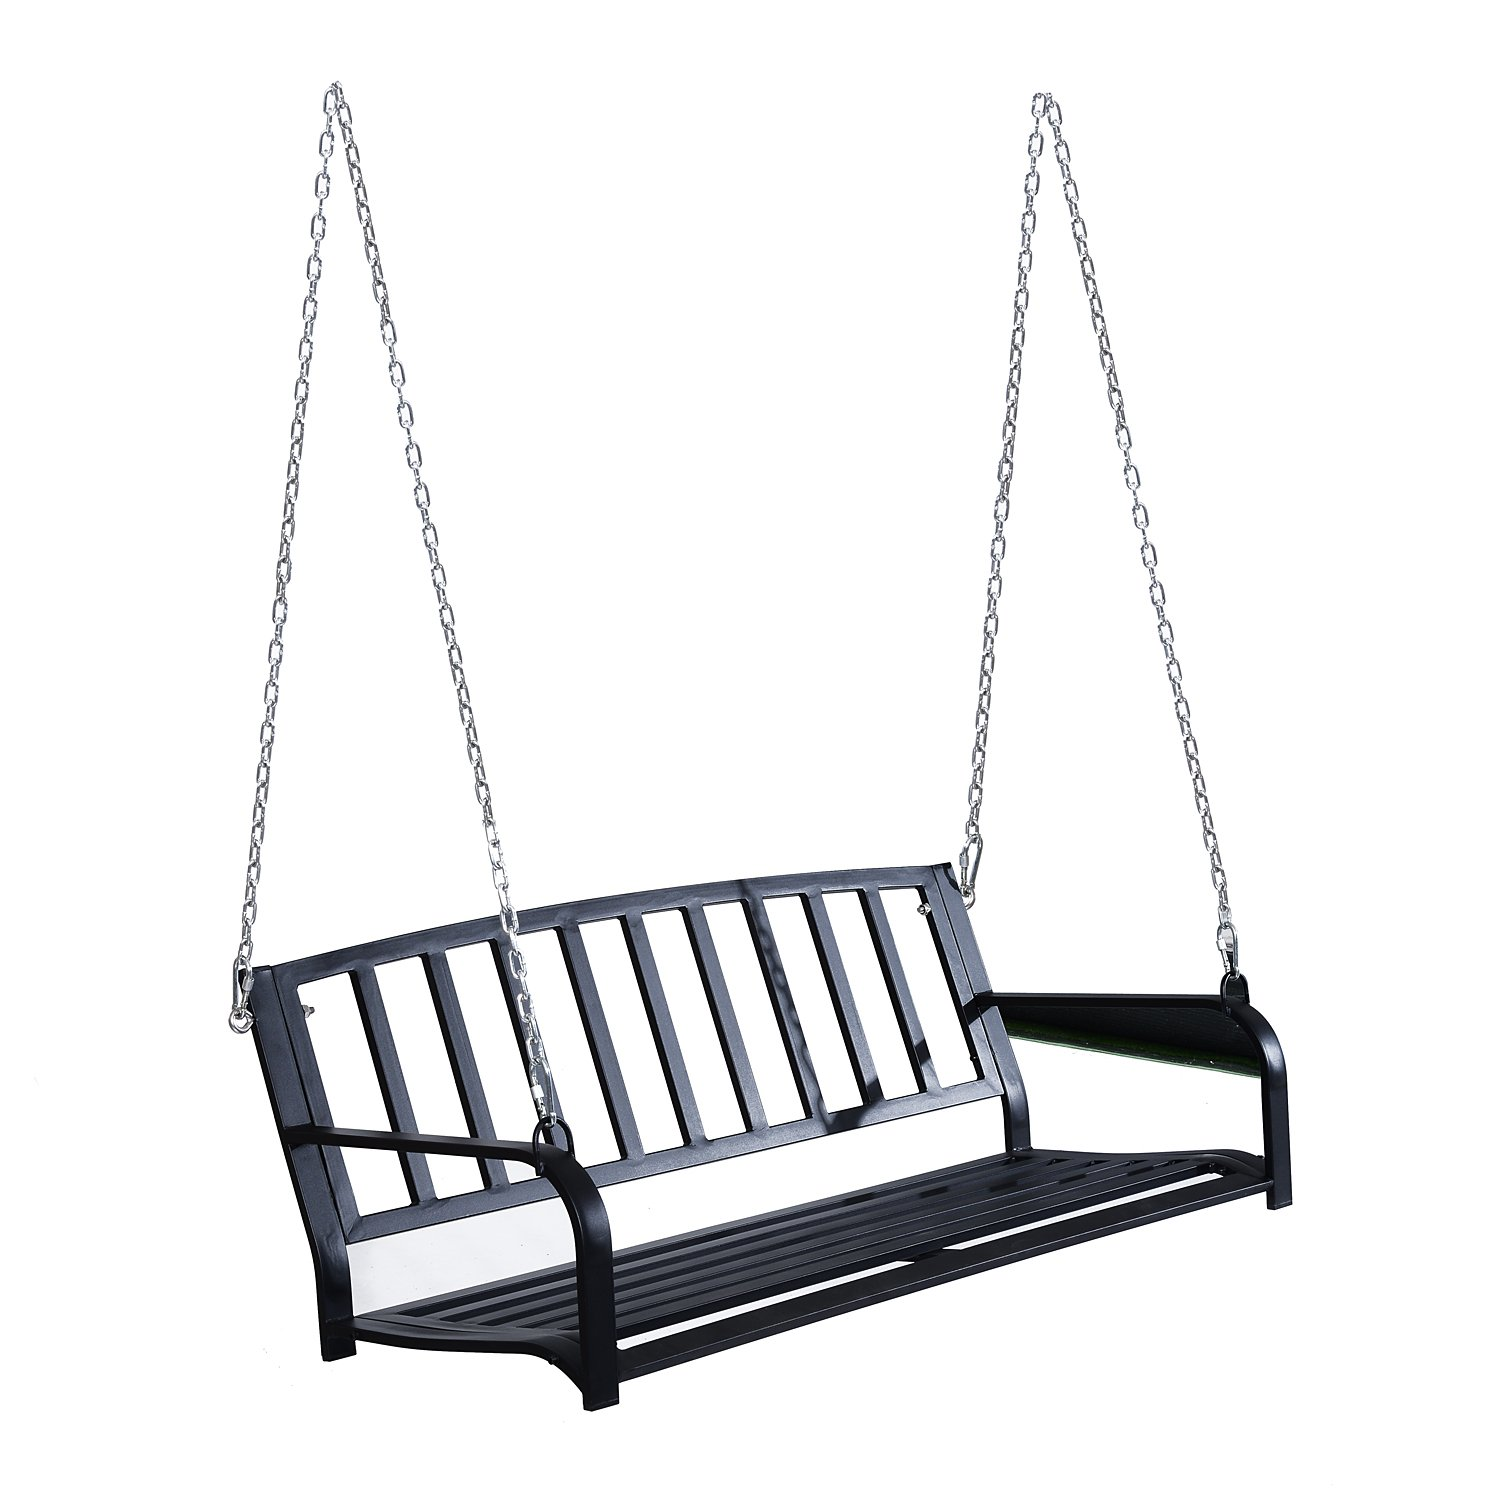 Outsunny 50'' Outdoor Patio Hanging Porch Swing Chair Bench Seat